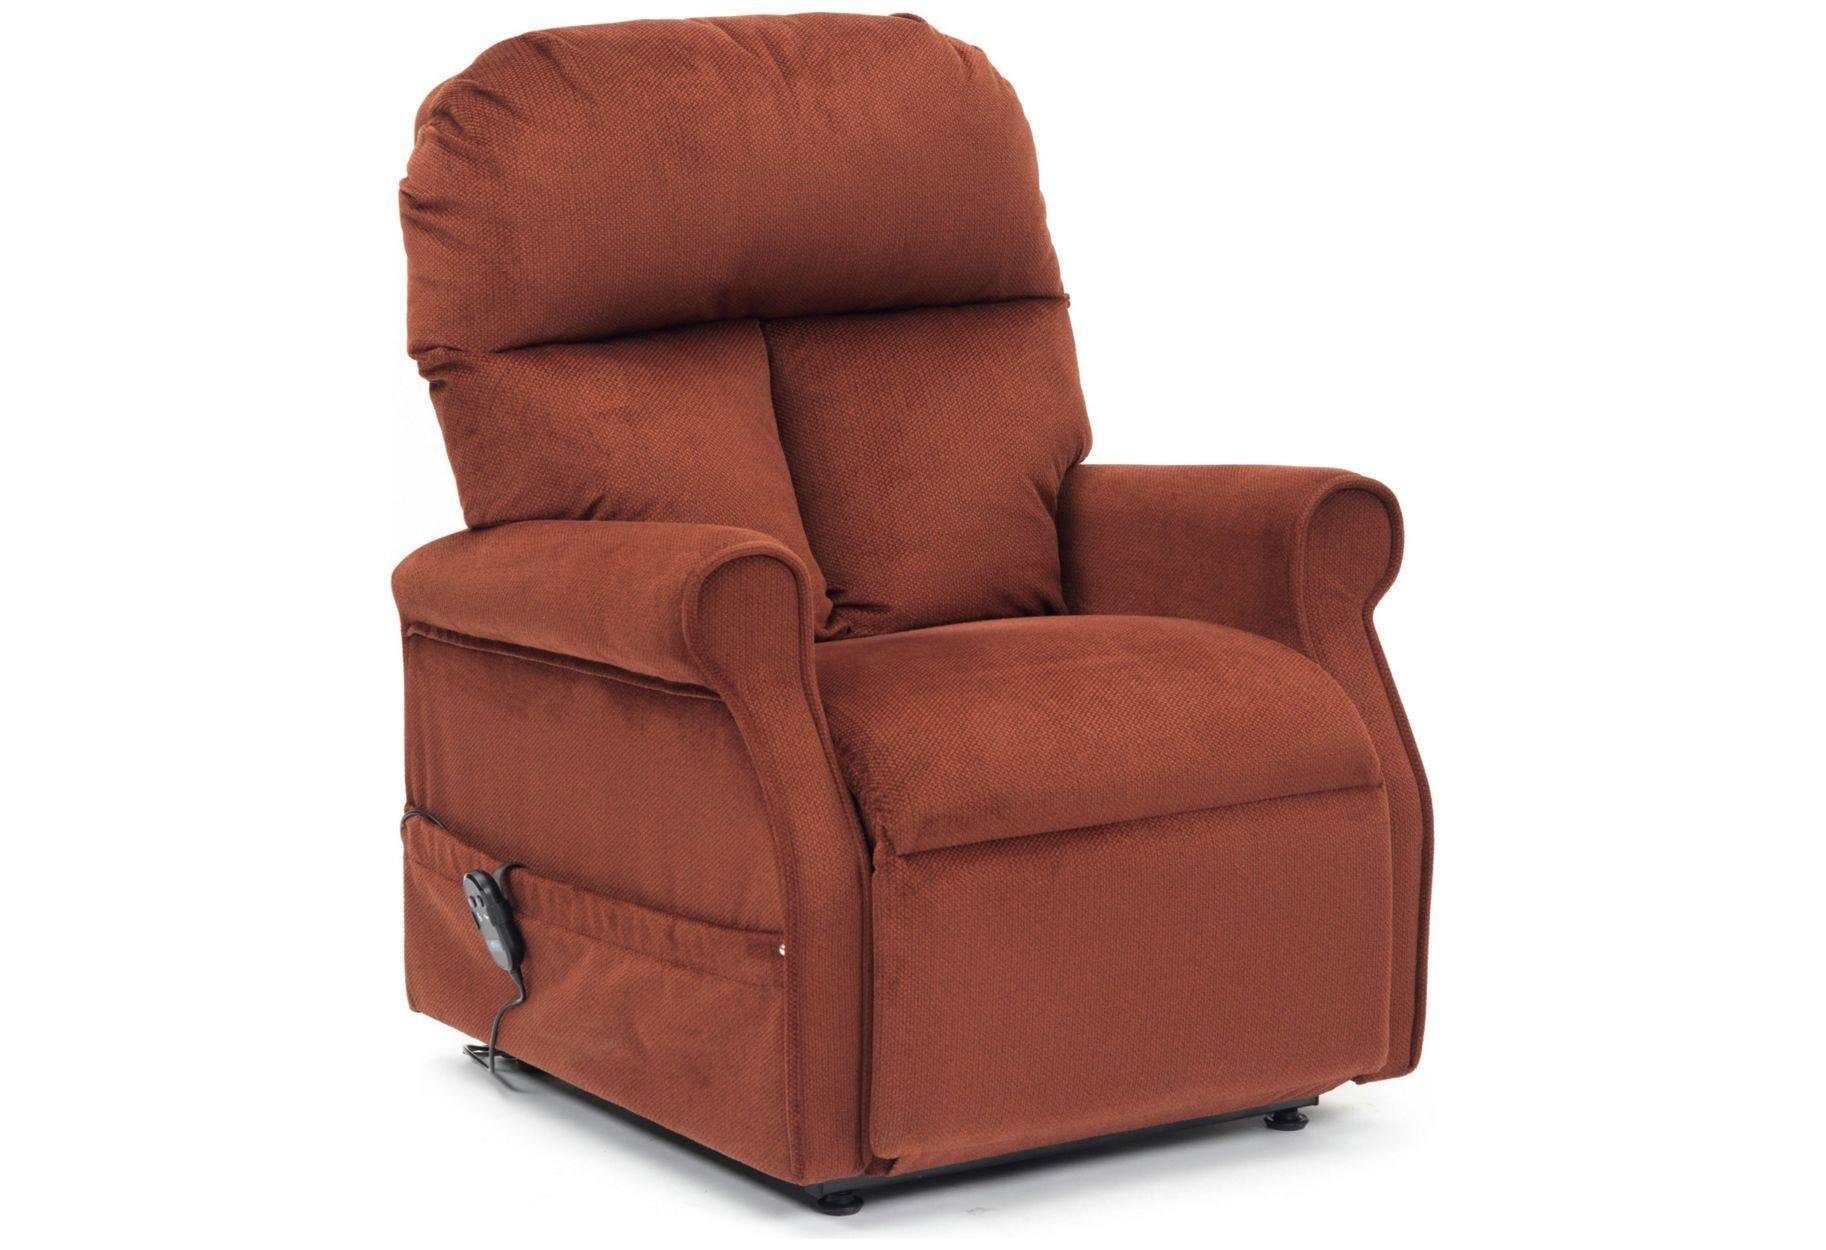 Drive DeVilbiss Healthcare Boston Riser Recliner Chair with Single Motor - Russet.